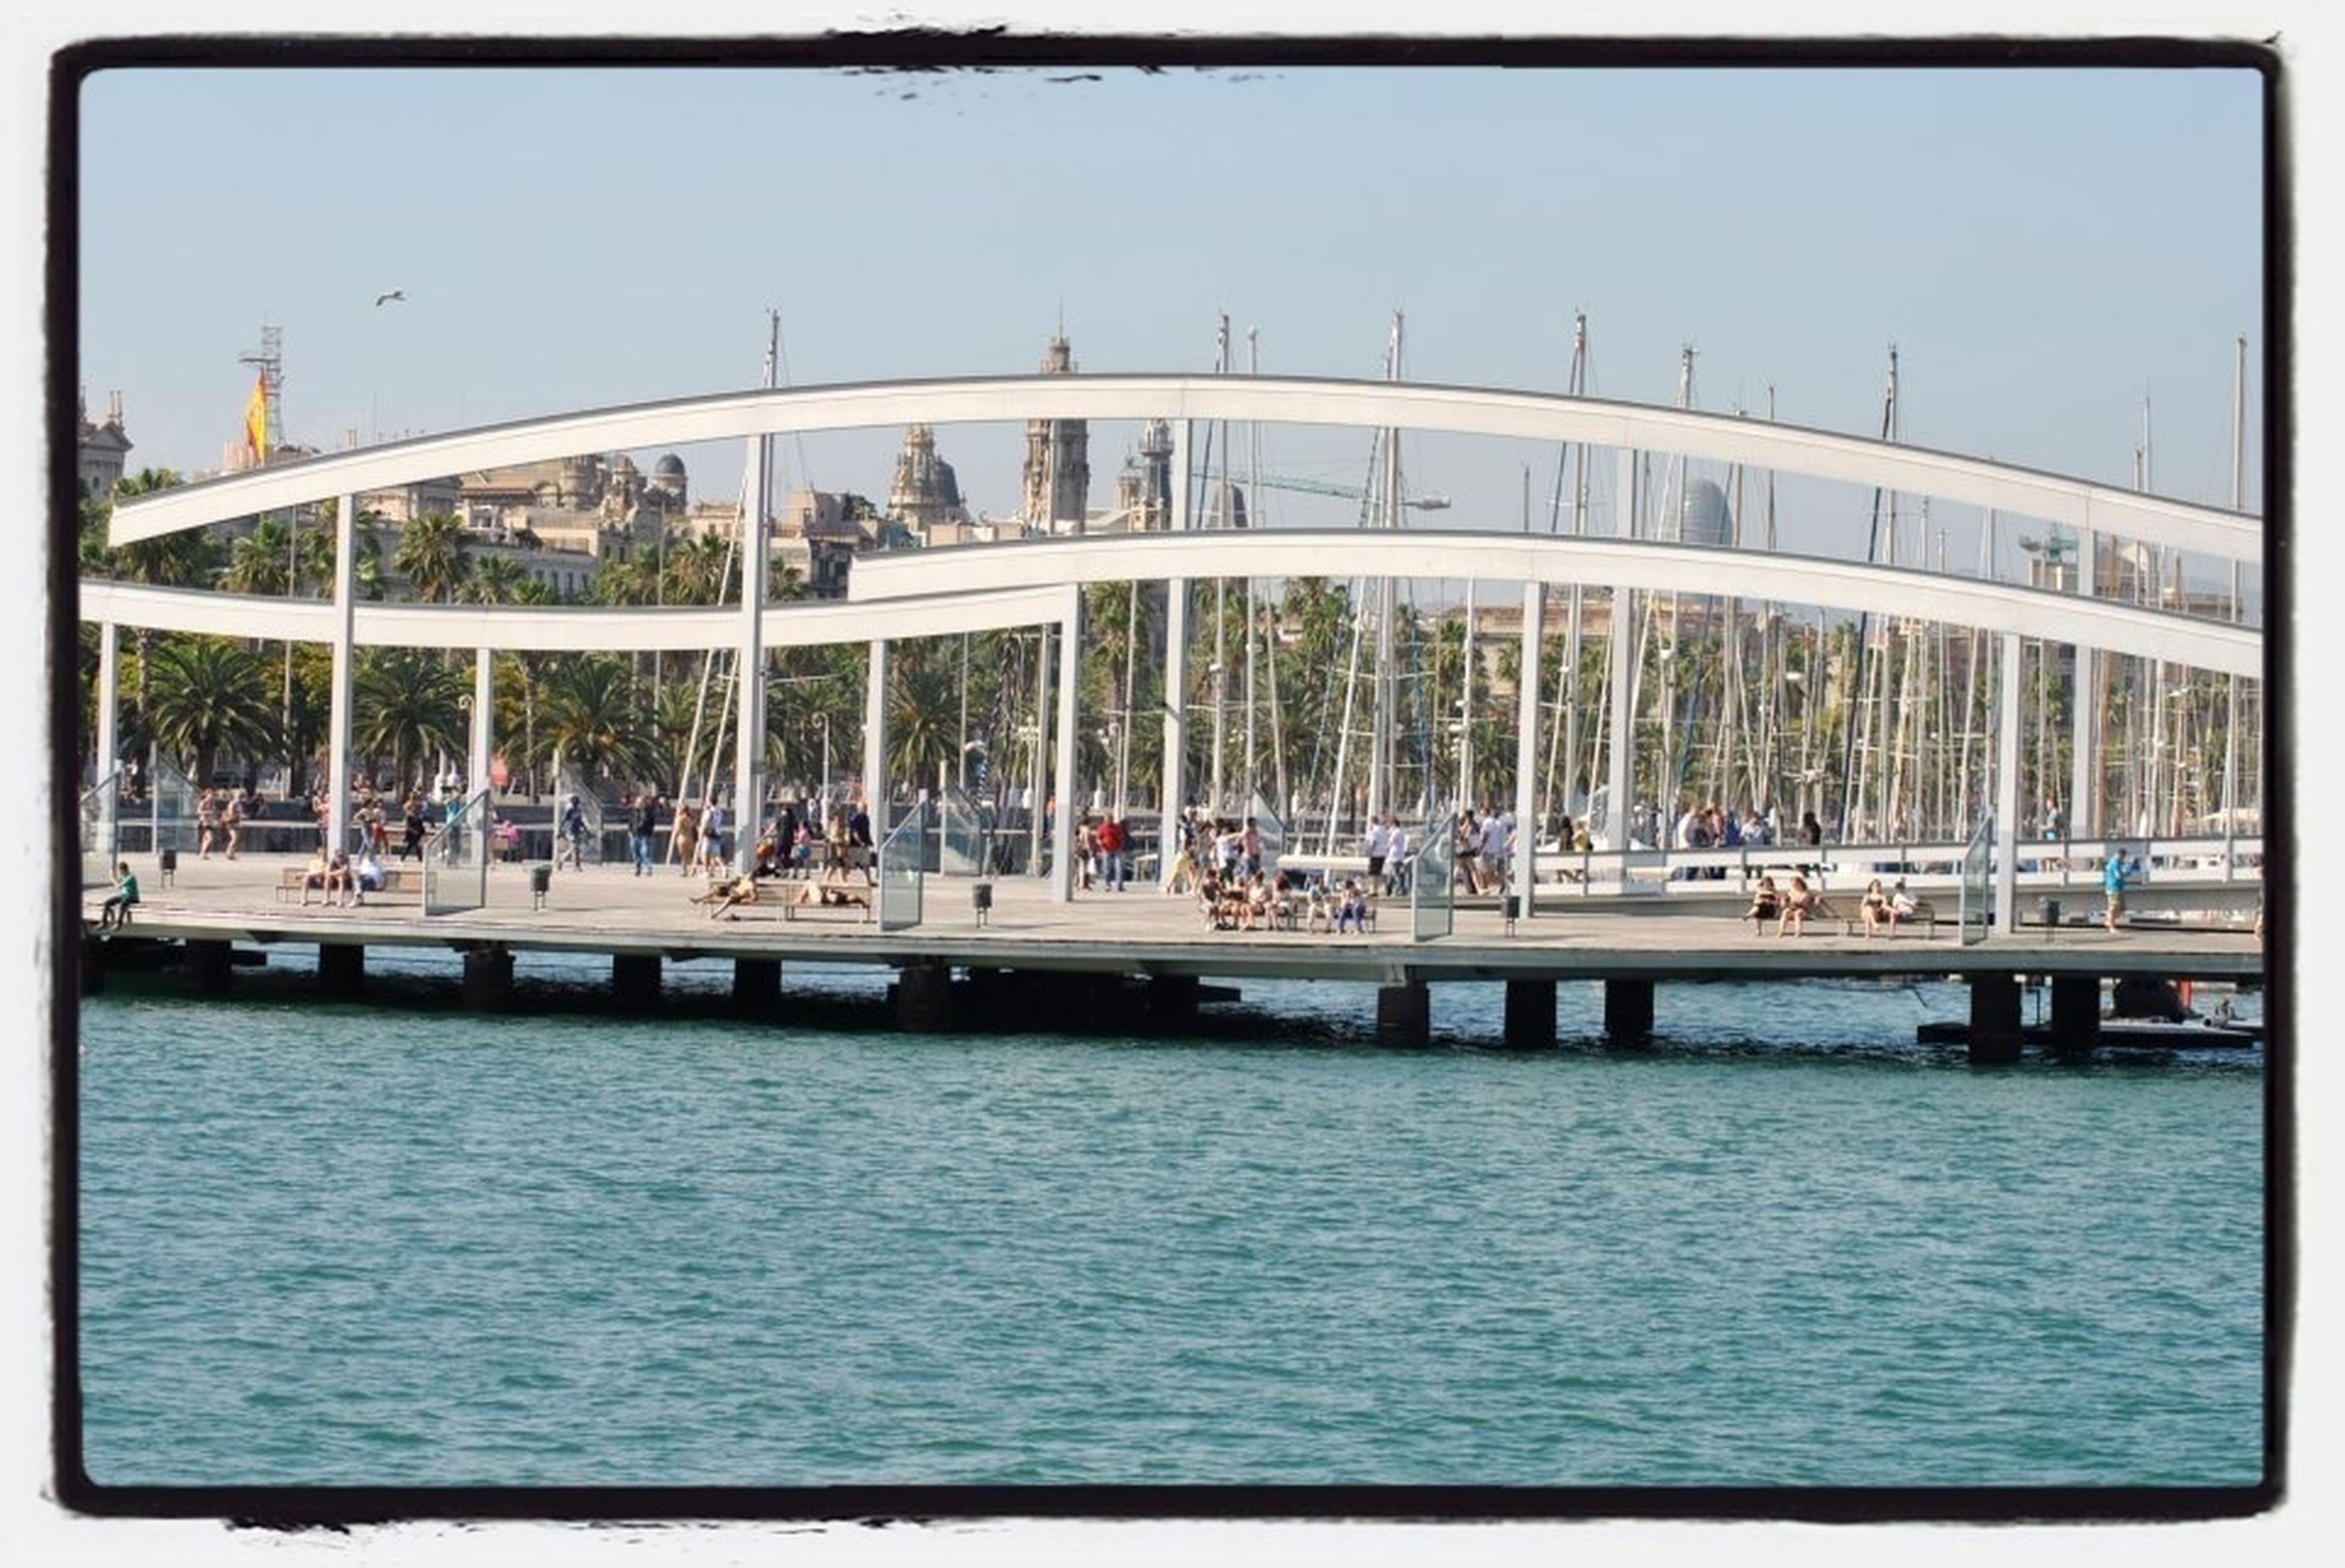 transfer print, water, auto post production filter, built structure, waterfront, architecture, transportation, river, nautical vessel, large group of people, day, building exterior, boat, incidental people, mode of transport, in a row, outdoors, reflection, sea, city